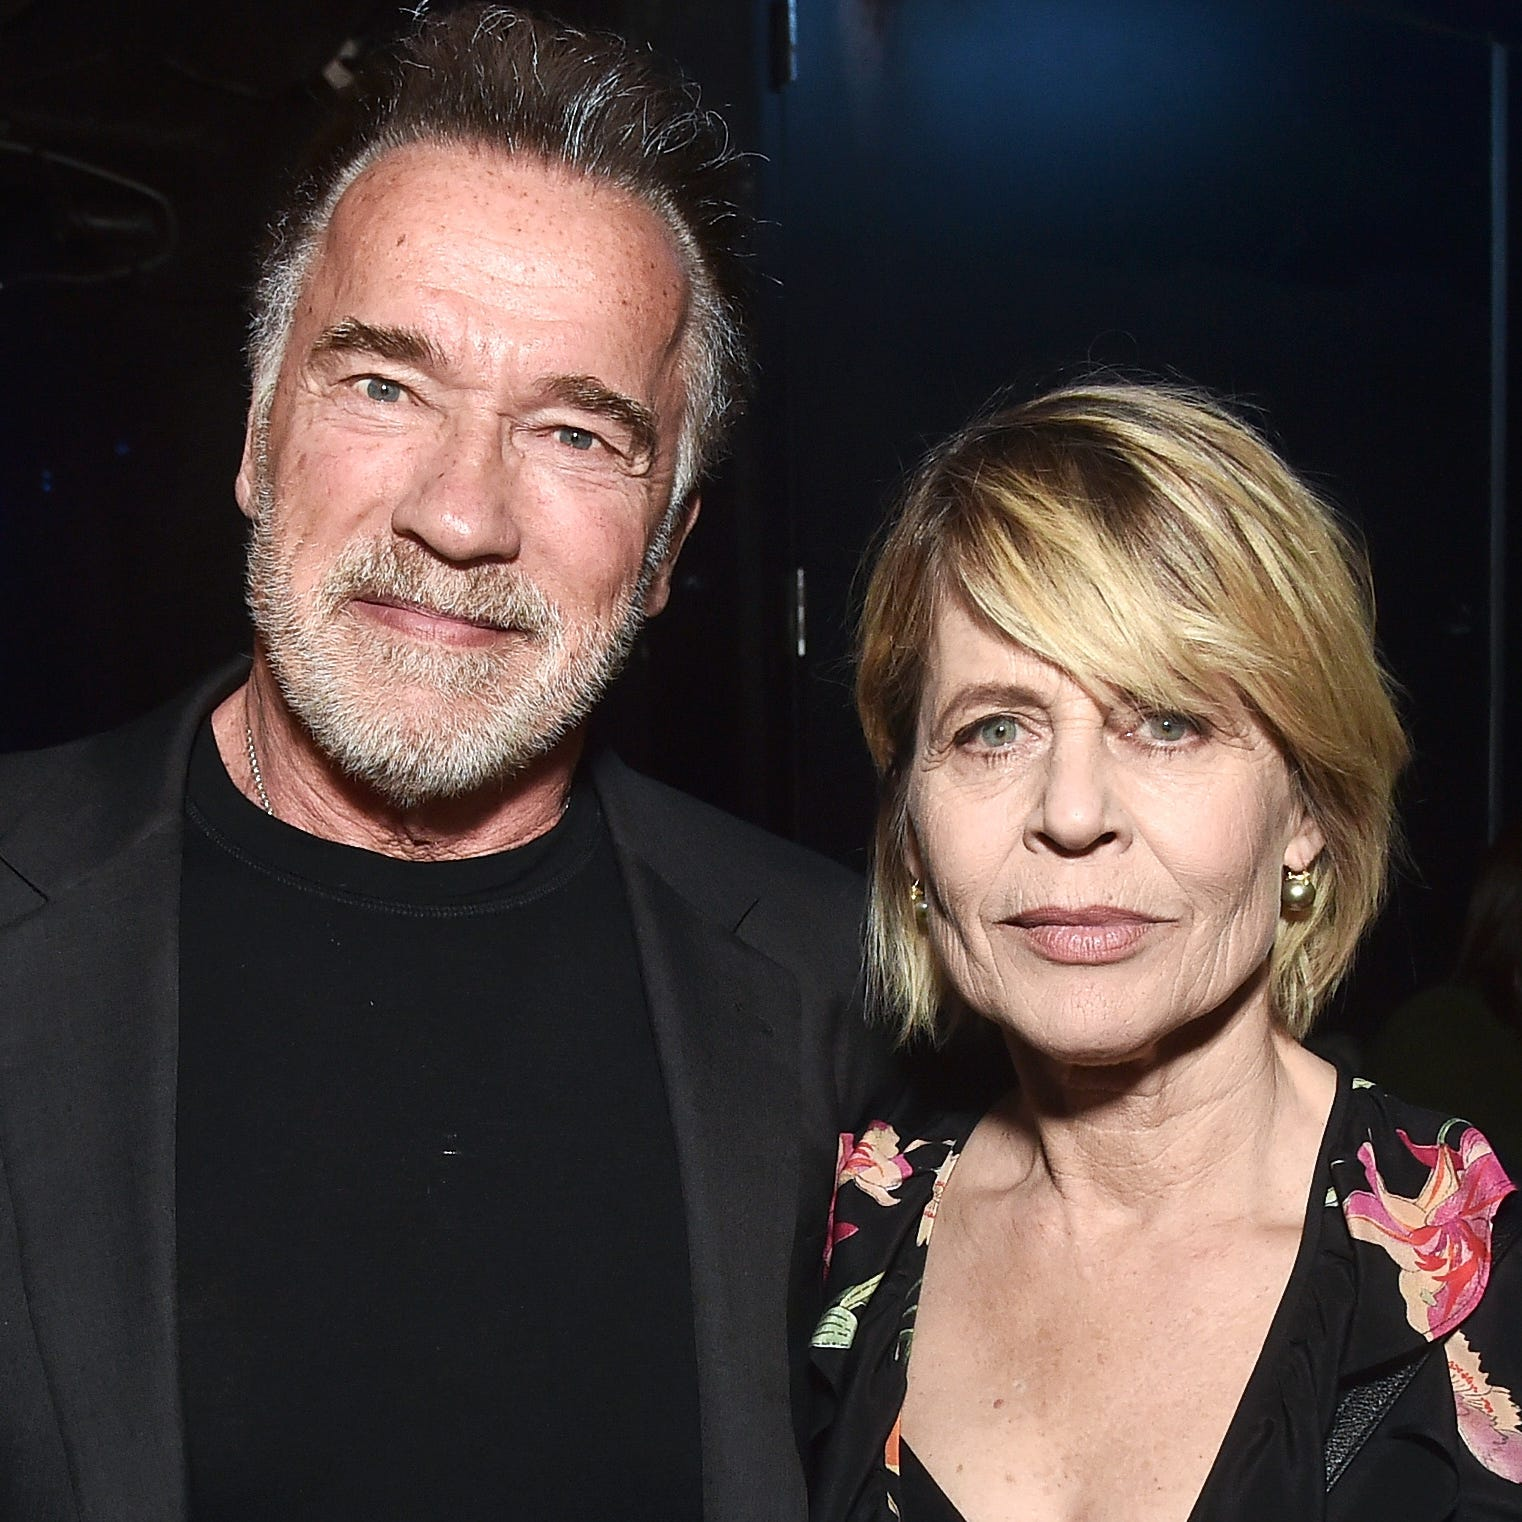 LAS VEGAS, NV - APRIL 04:  (L-R) Arnold Schwarzenegger and Linda Hamilton attend CinemaCon 2019- Paramount Pictures Invites You to an Exclusive Presentation Highlighting Its Upcoming Slate at The Colosseum at Caesars Palace during CinemaCon, the official convention of the National Association of Theatre Owners, on April 4, 2019 in Las Vegas, Nevada.  (Photo by Alberto E. Rodriguez/Getty Images for CinemaCon) ORG XMIT: 775321861 ORIG FILE ID: 1134869775